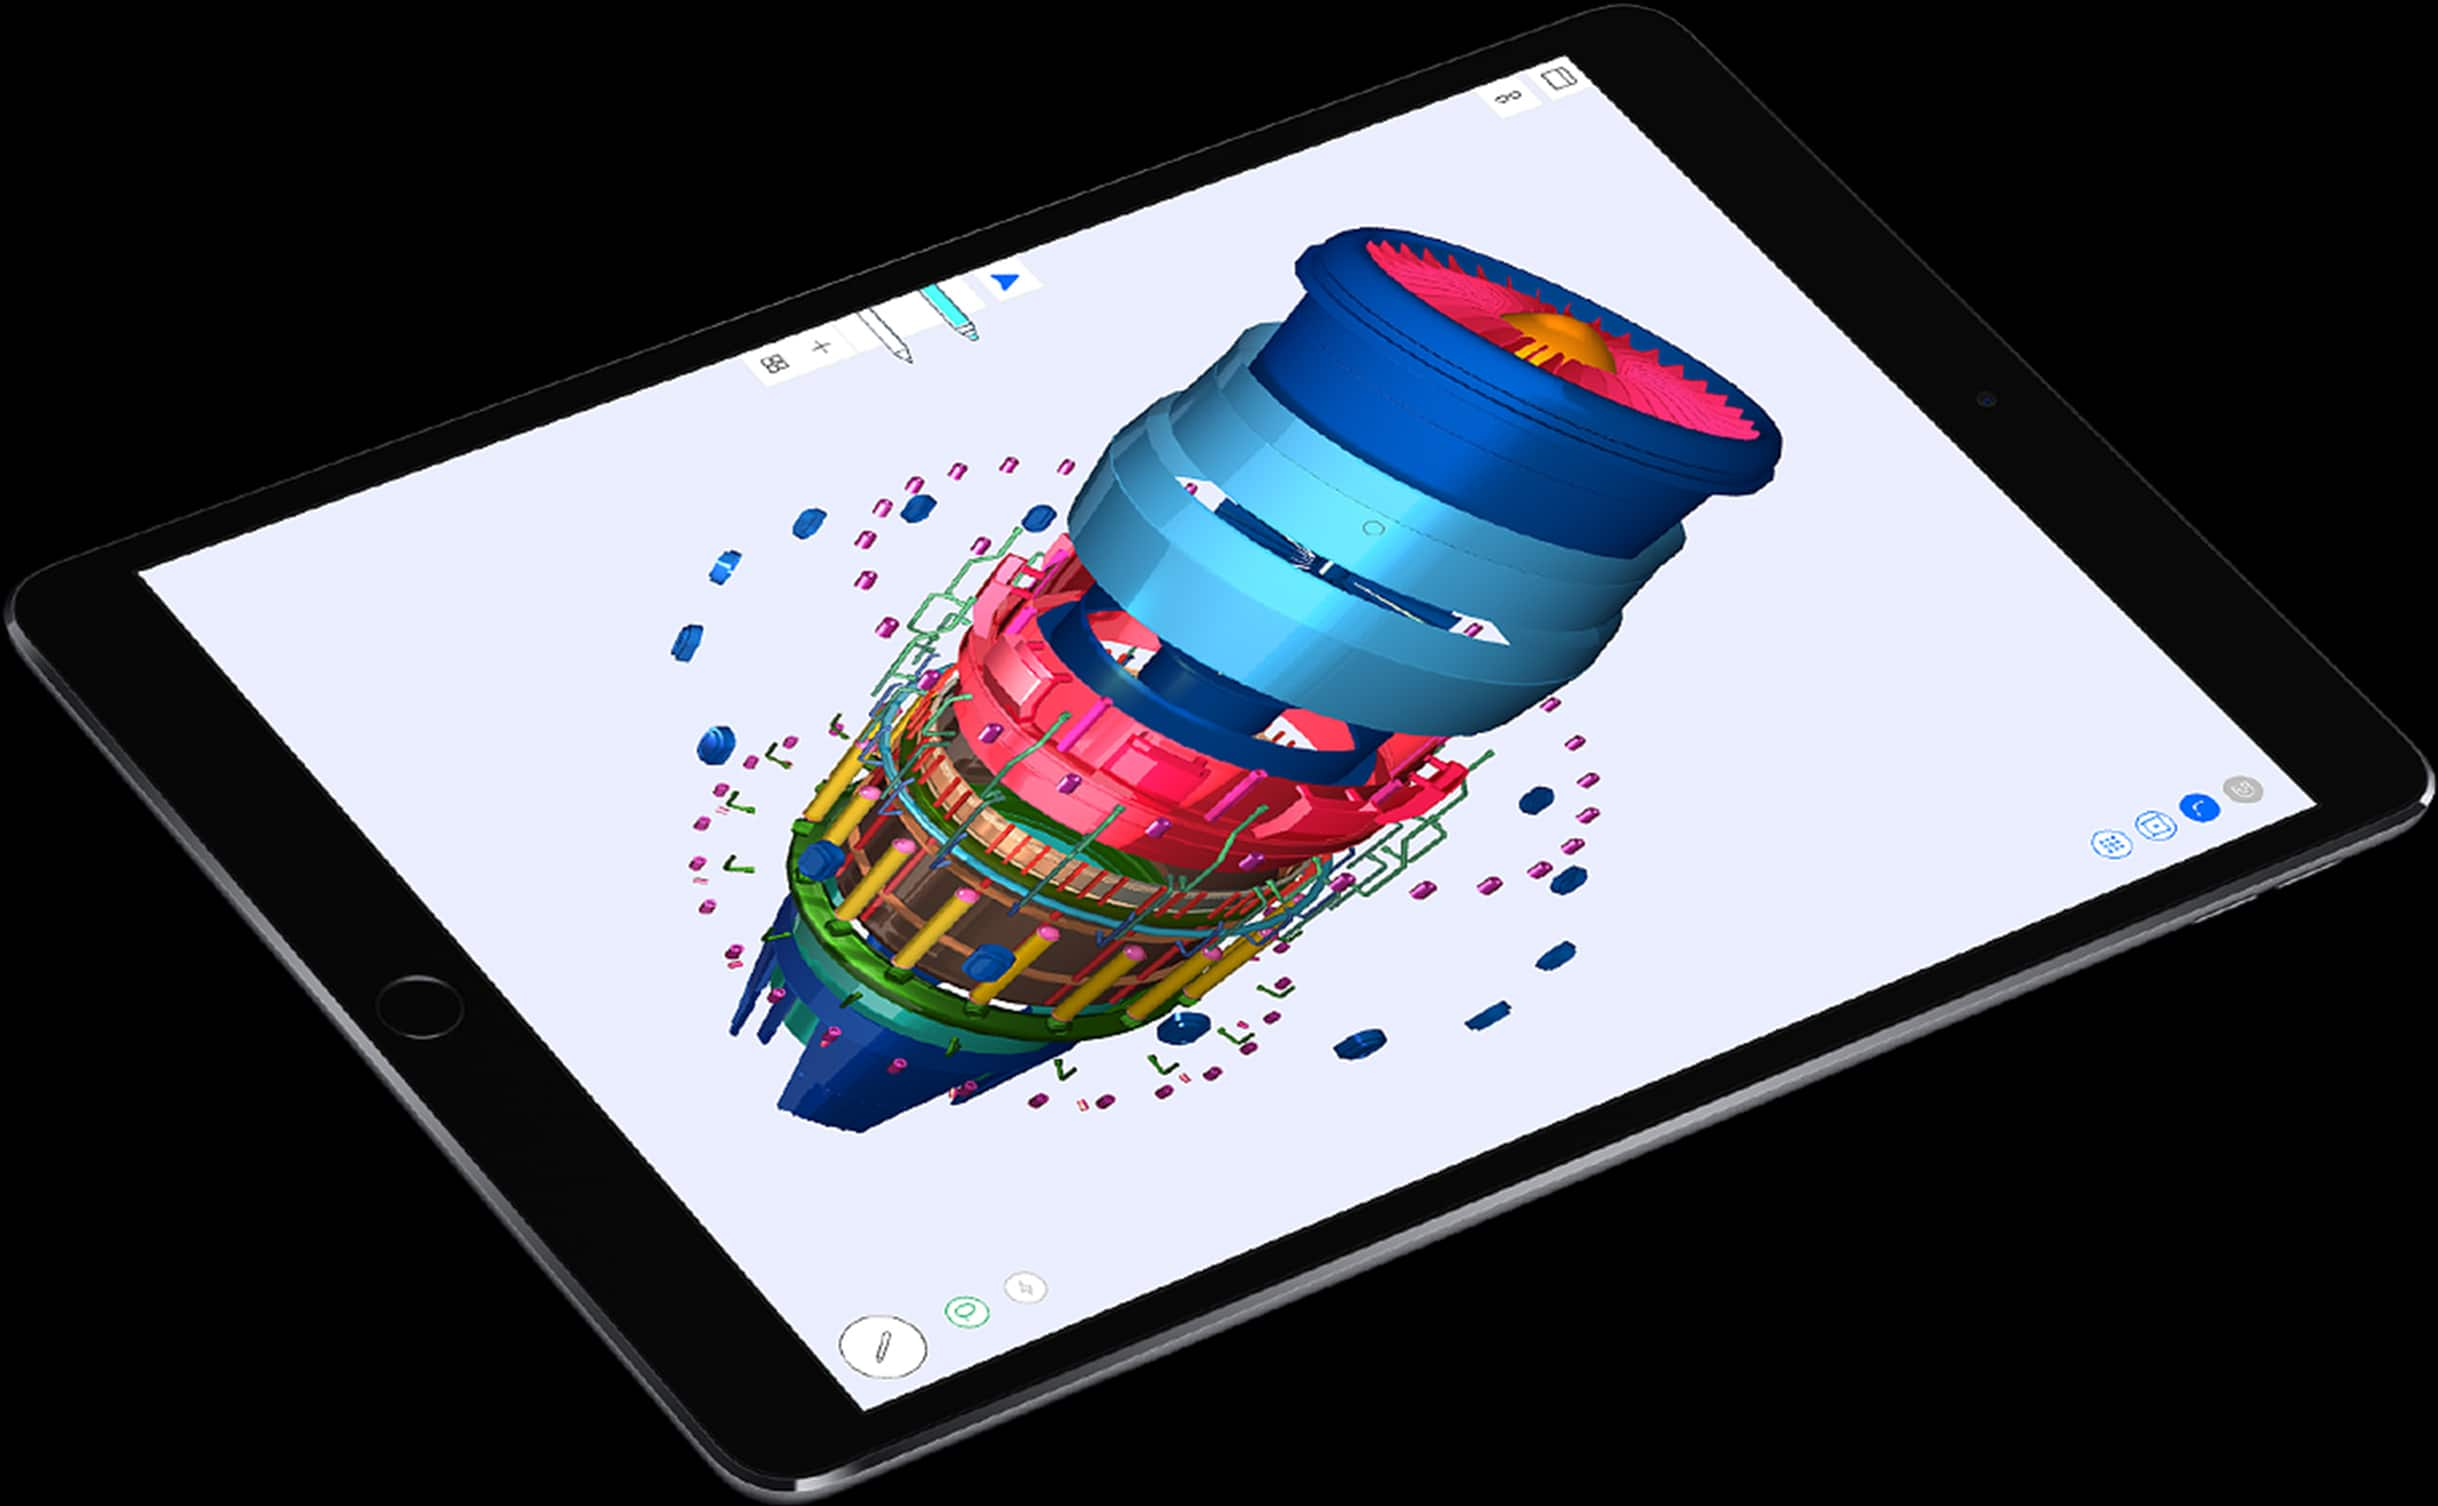 Apple Ipad Pro 129 Inch Price Features And Specs Att 105 512gb New Tablet Silver Wifi Only More Powerful Than Most Pc Laptops